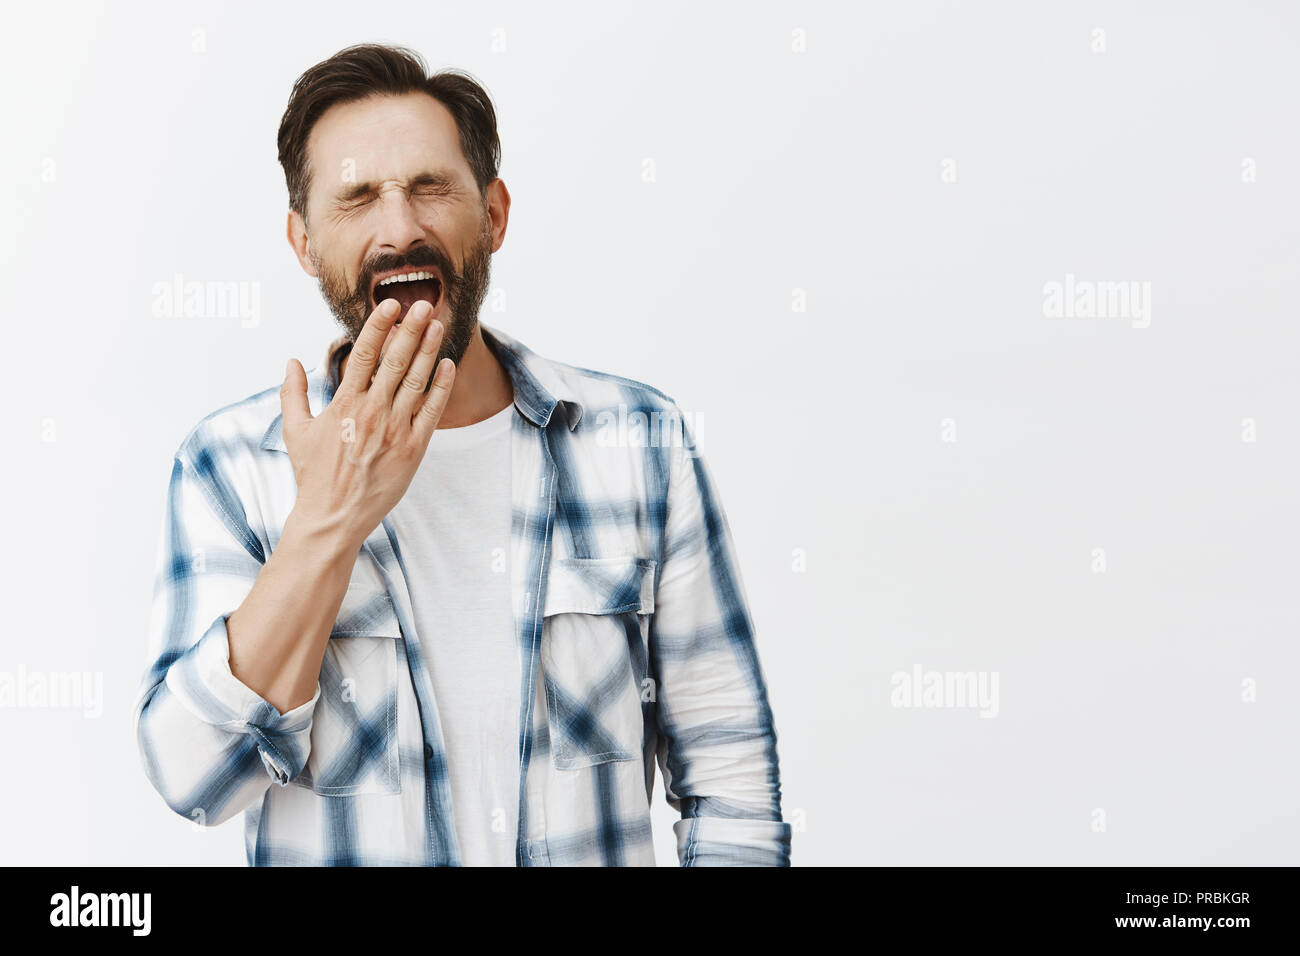 Man woke up early not be late on work, feeling sleepy and tired, standing over gray background in casual checked shirt, yawning with closed eyes and covering opened mouth with palm - Stock Image